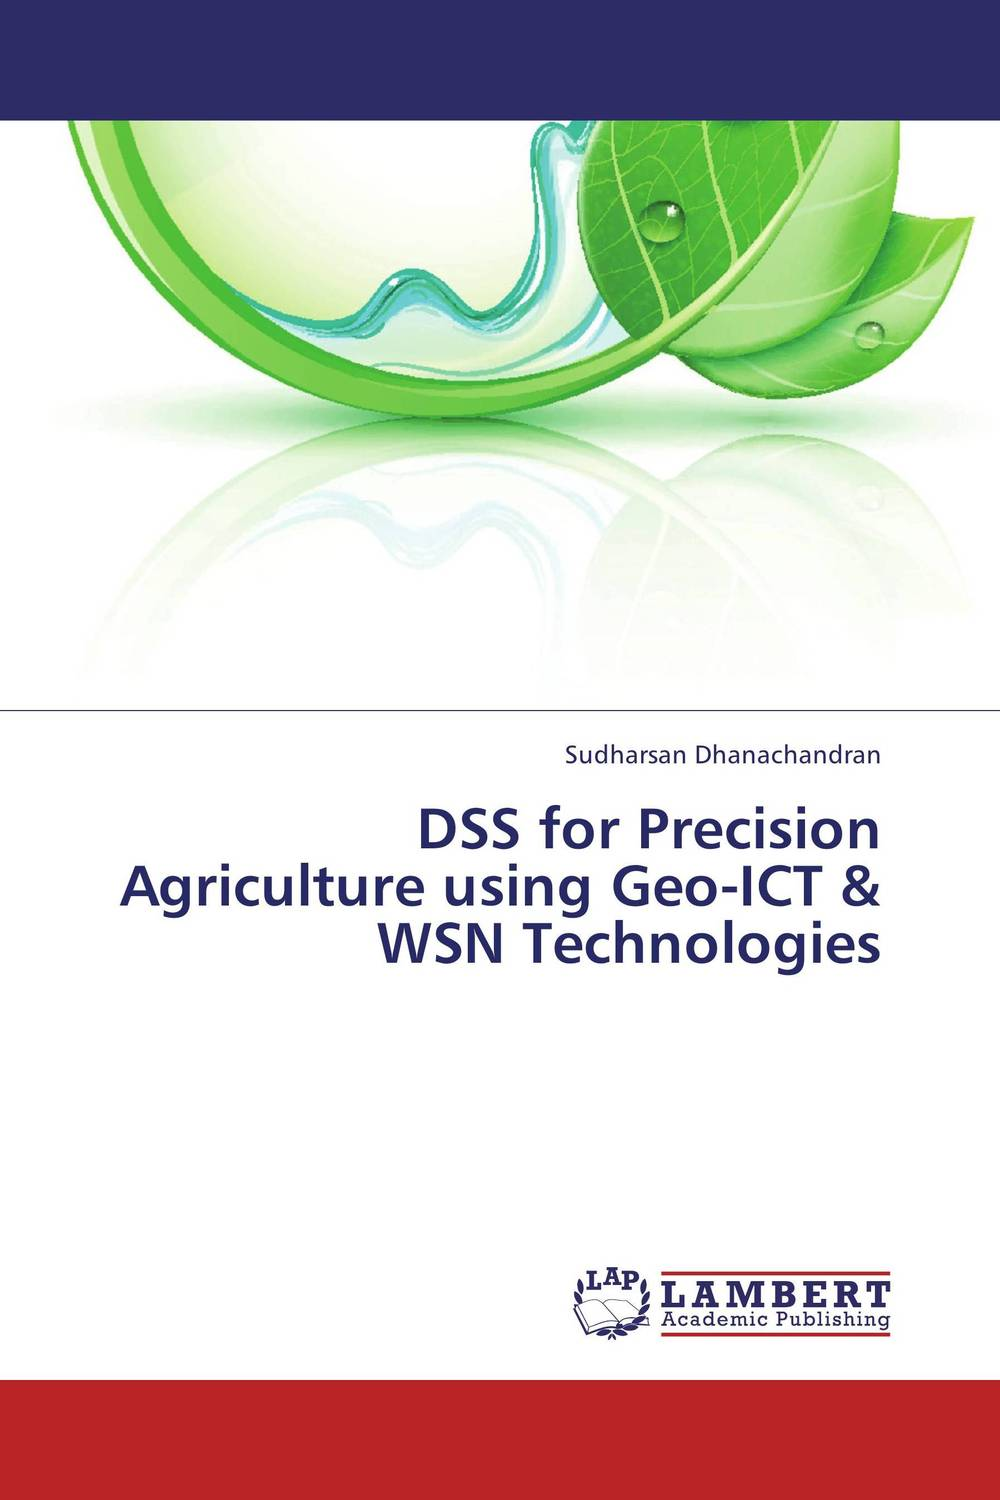 DSS for Precision Agriculture using Geo-ICT & WSN Technologies pastoralism and agriculture pennar basin india